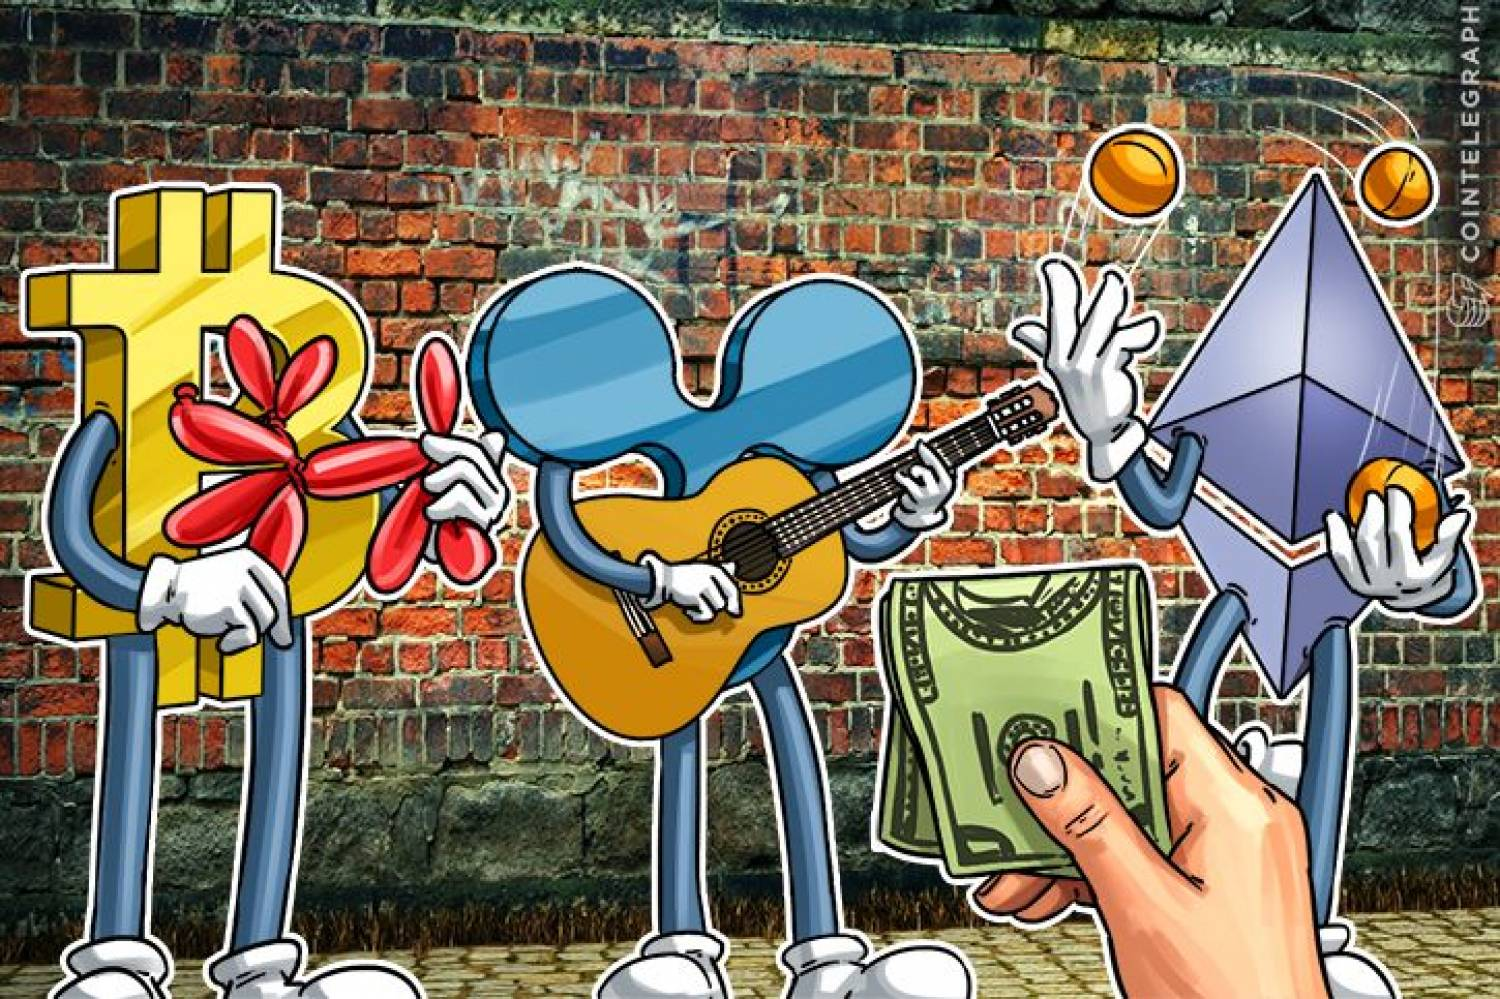 Bitcoin, Ripple and Ethereum as street performers